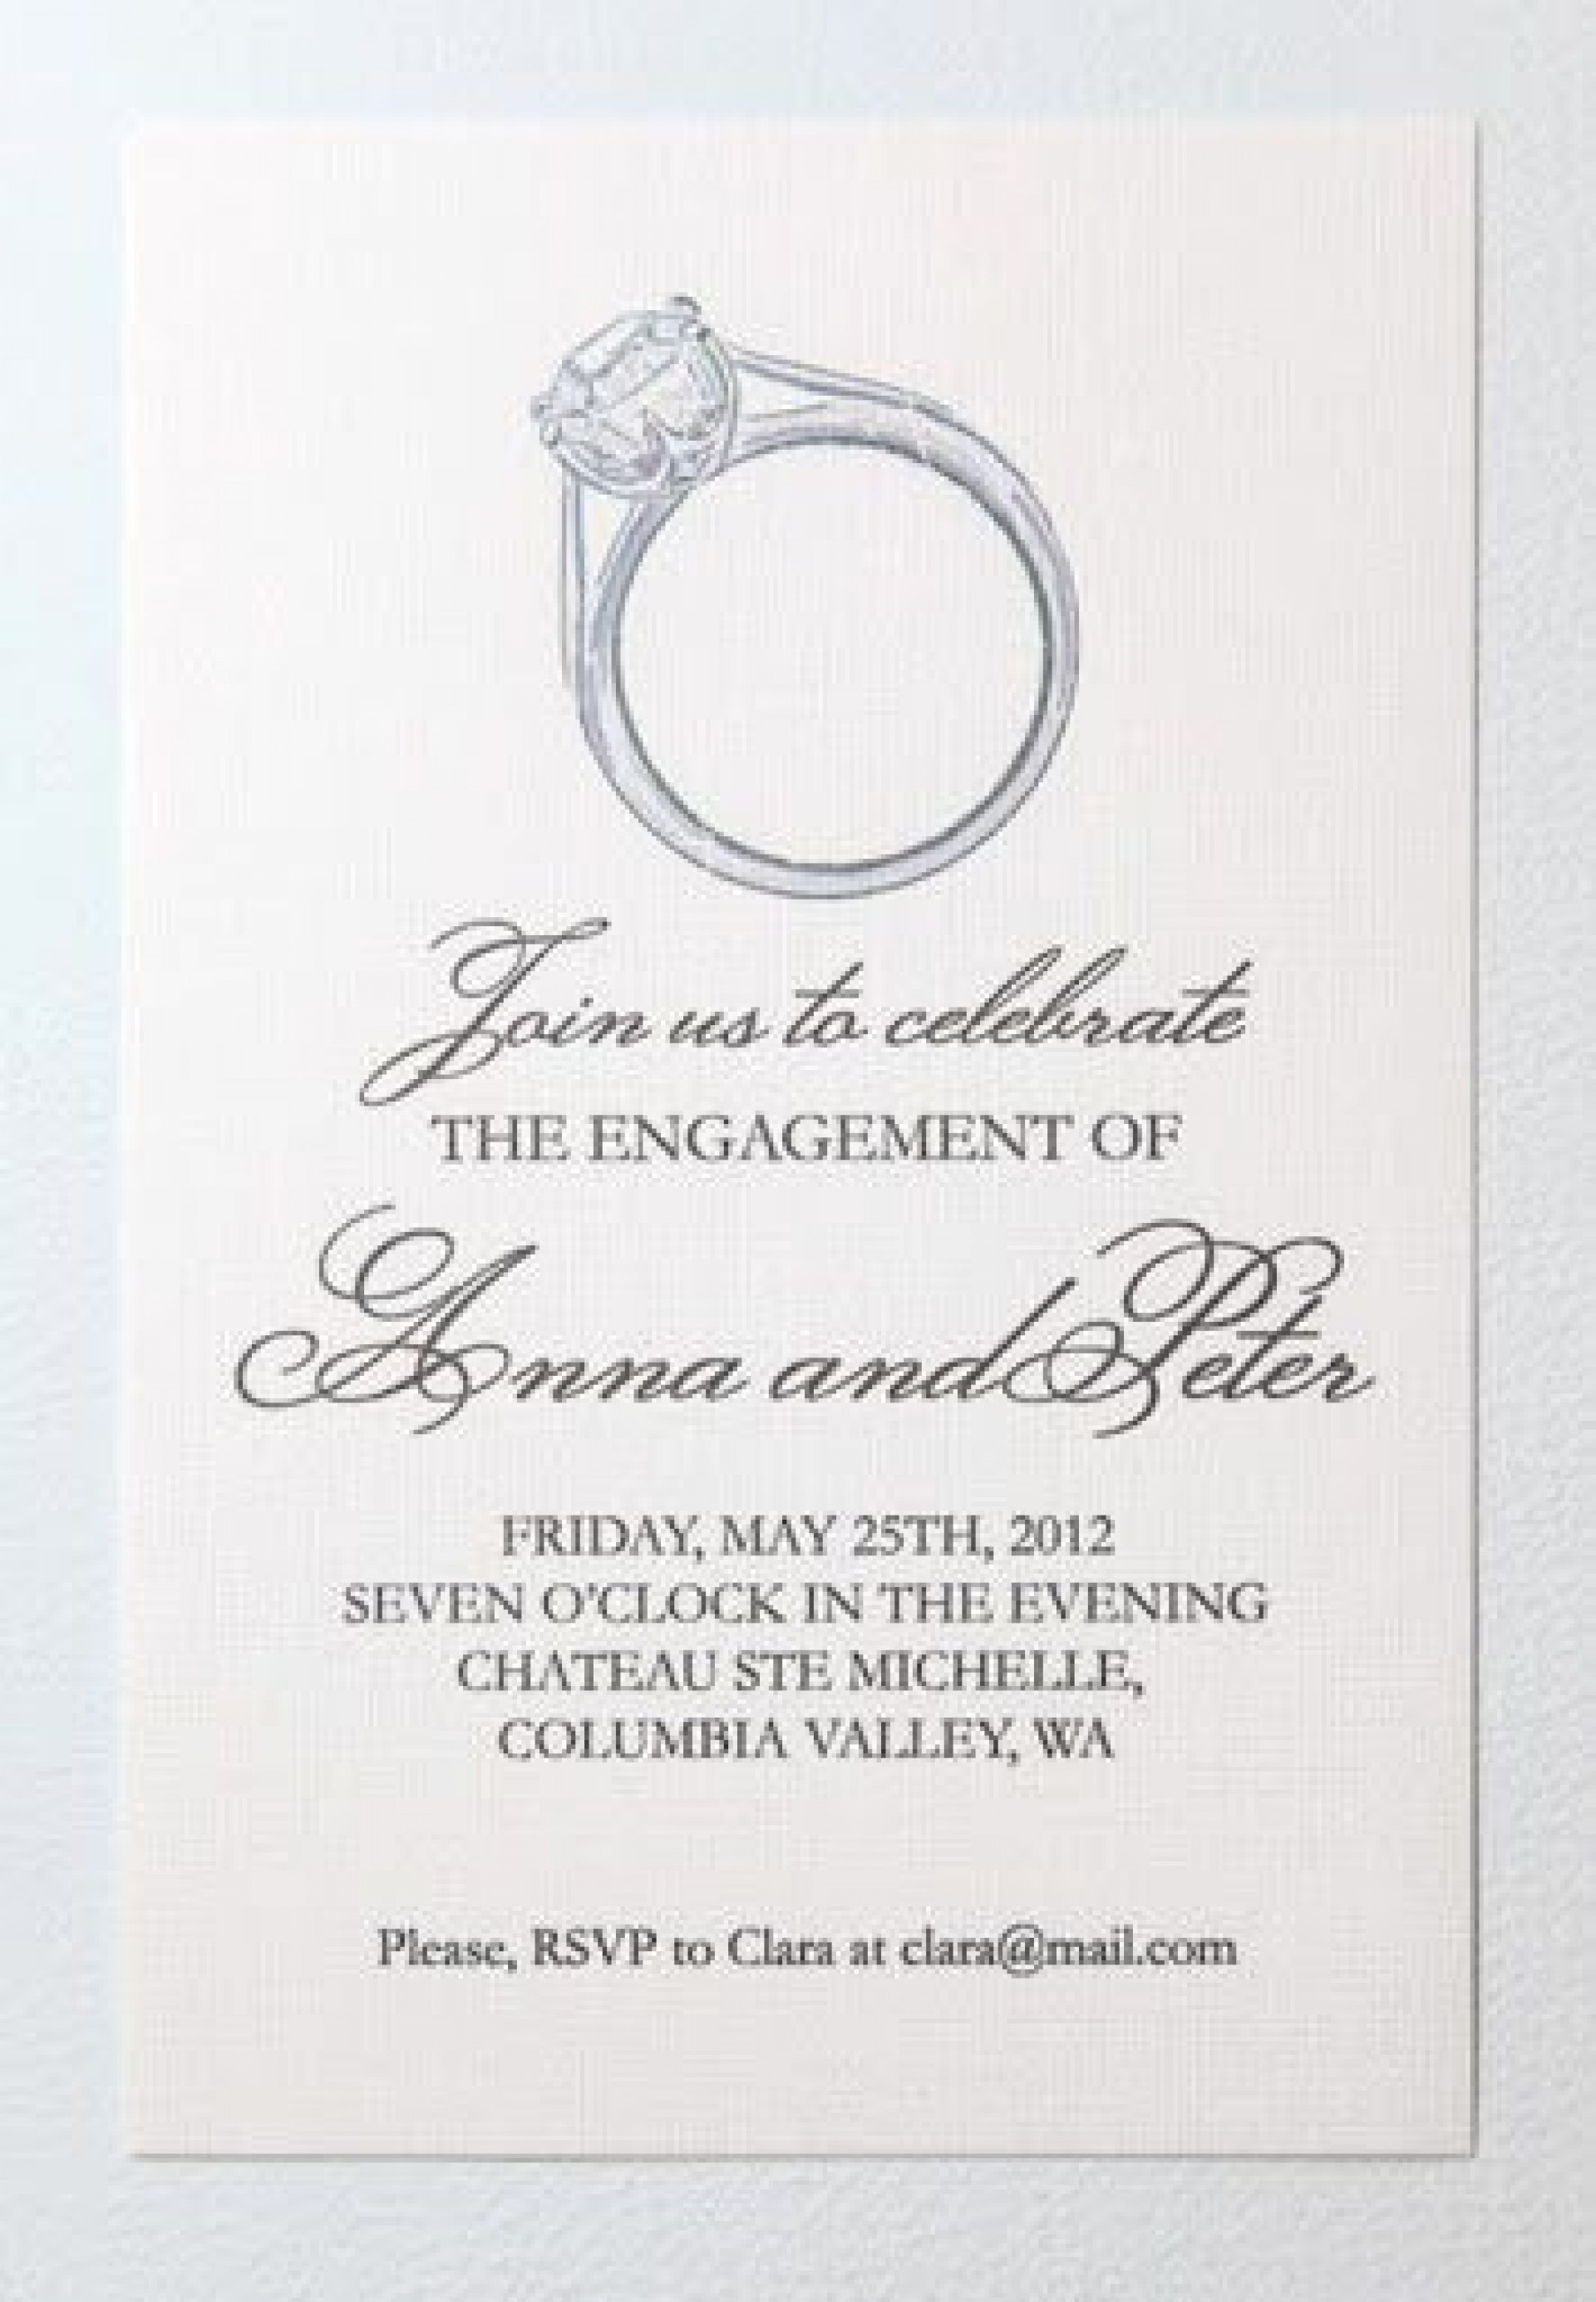 008 Unforgettable Free Engagement Invitation Template Online With Photo Highest Clarity 1920